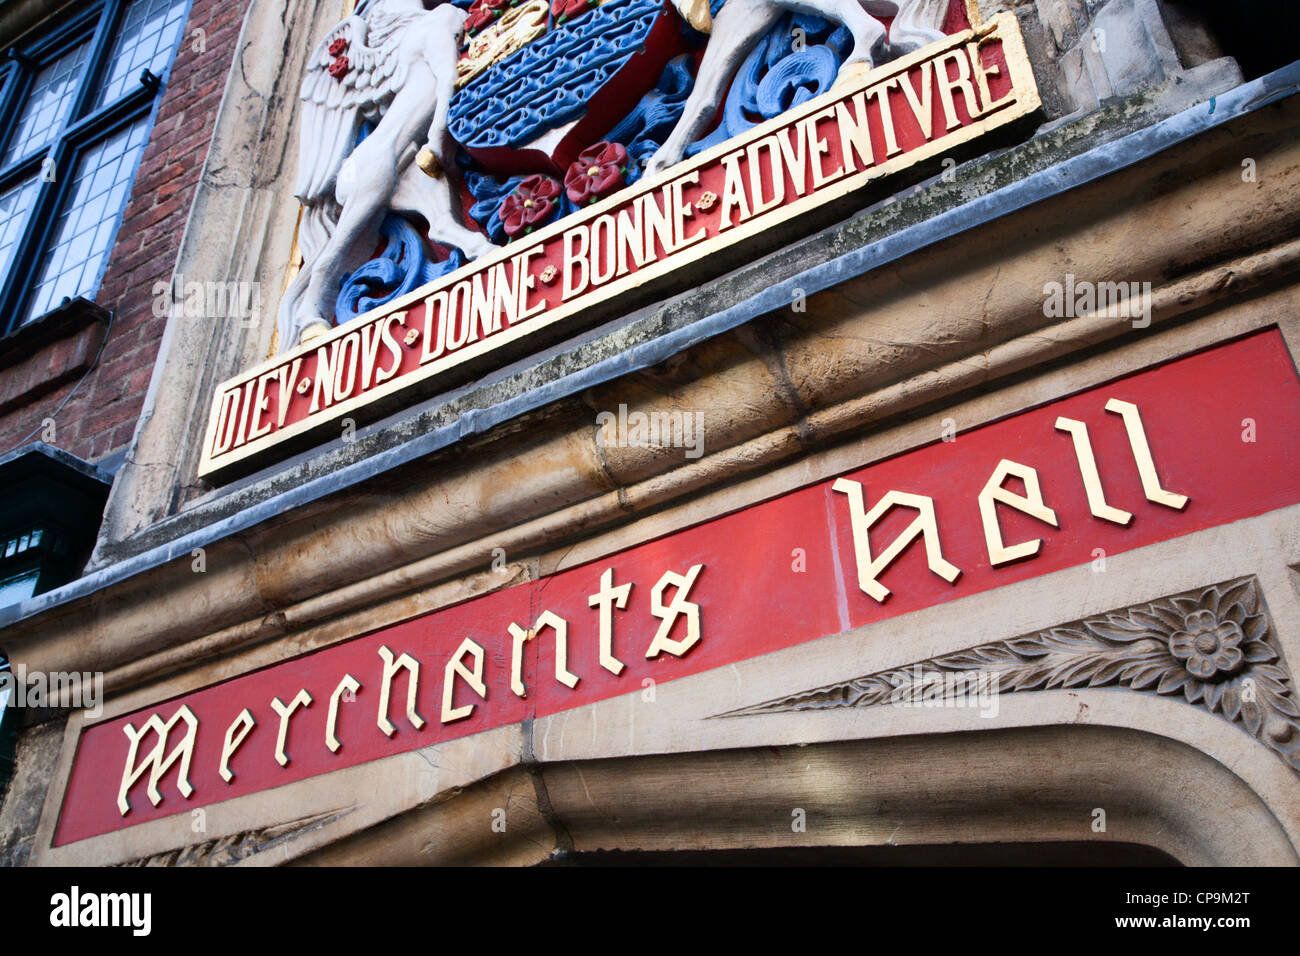 Merchant Adventurers Hall Entrance on Fossgate York Yorkshire England - Stock Image